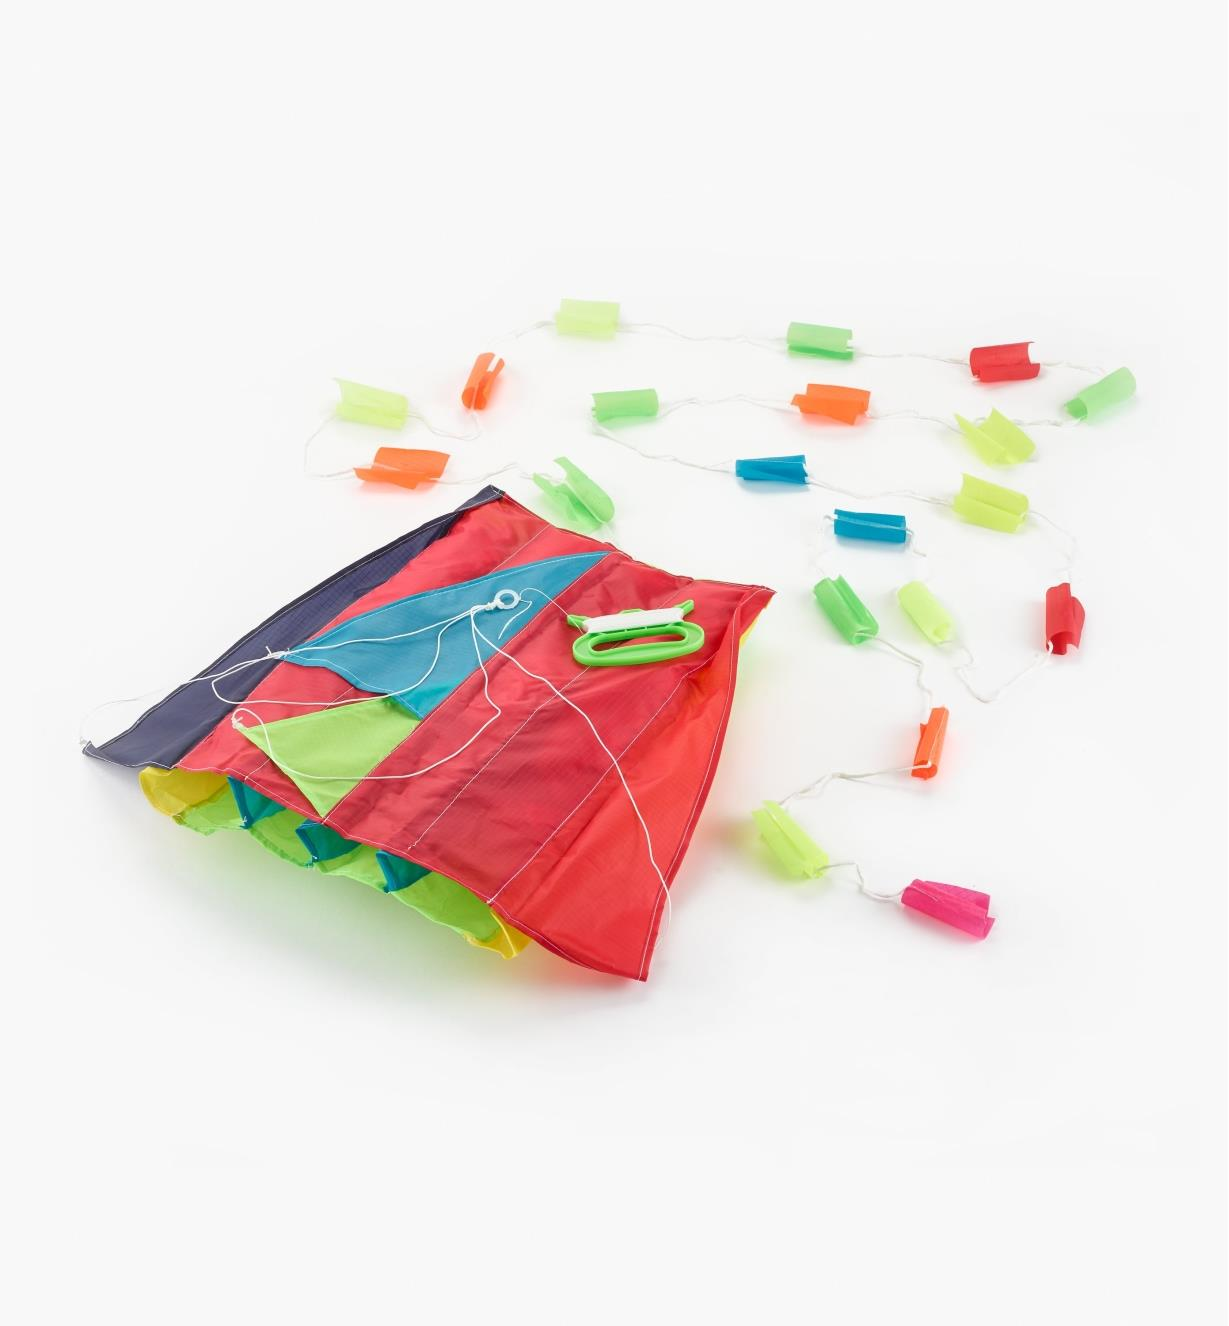 GB340 - Pocket Kite